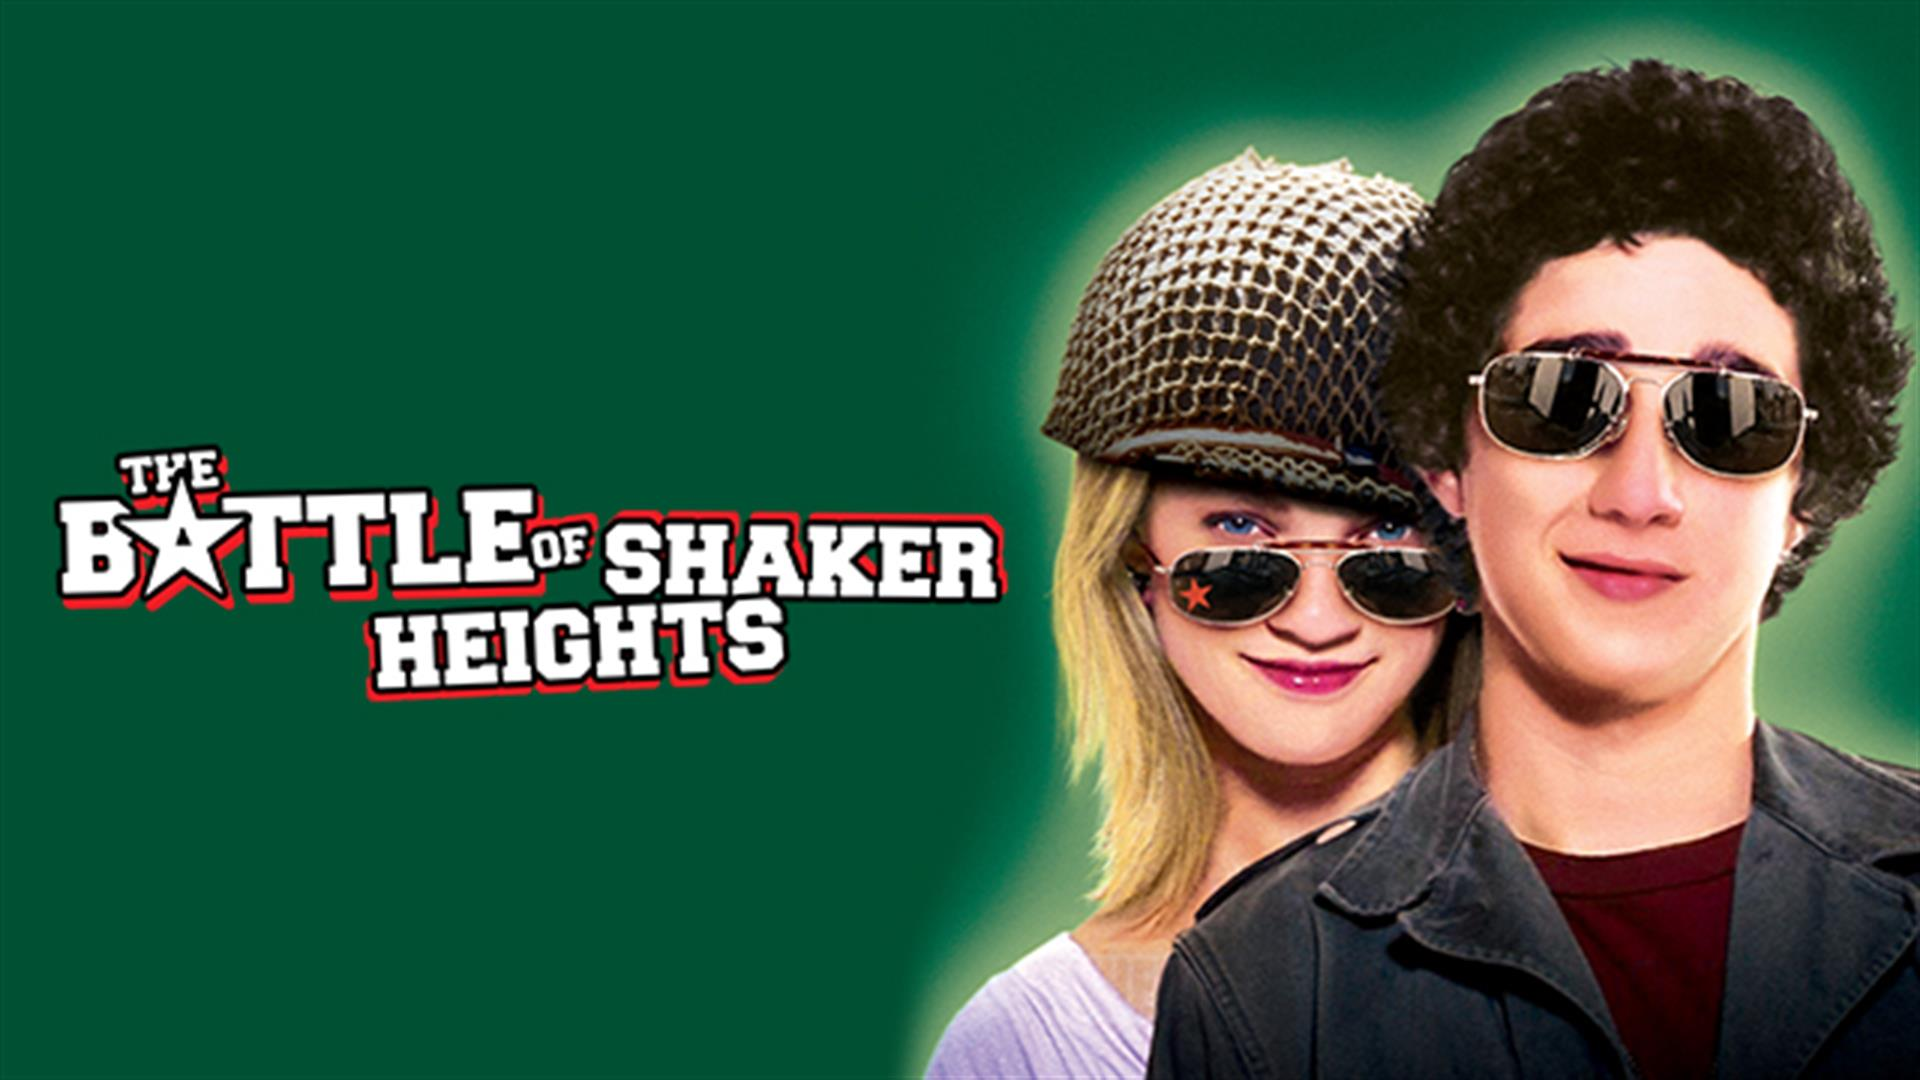 The Battle of Shaker Heights - Official Trailer (HD)